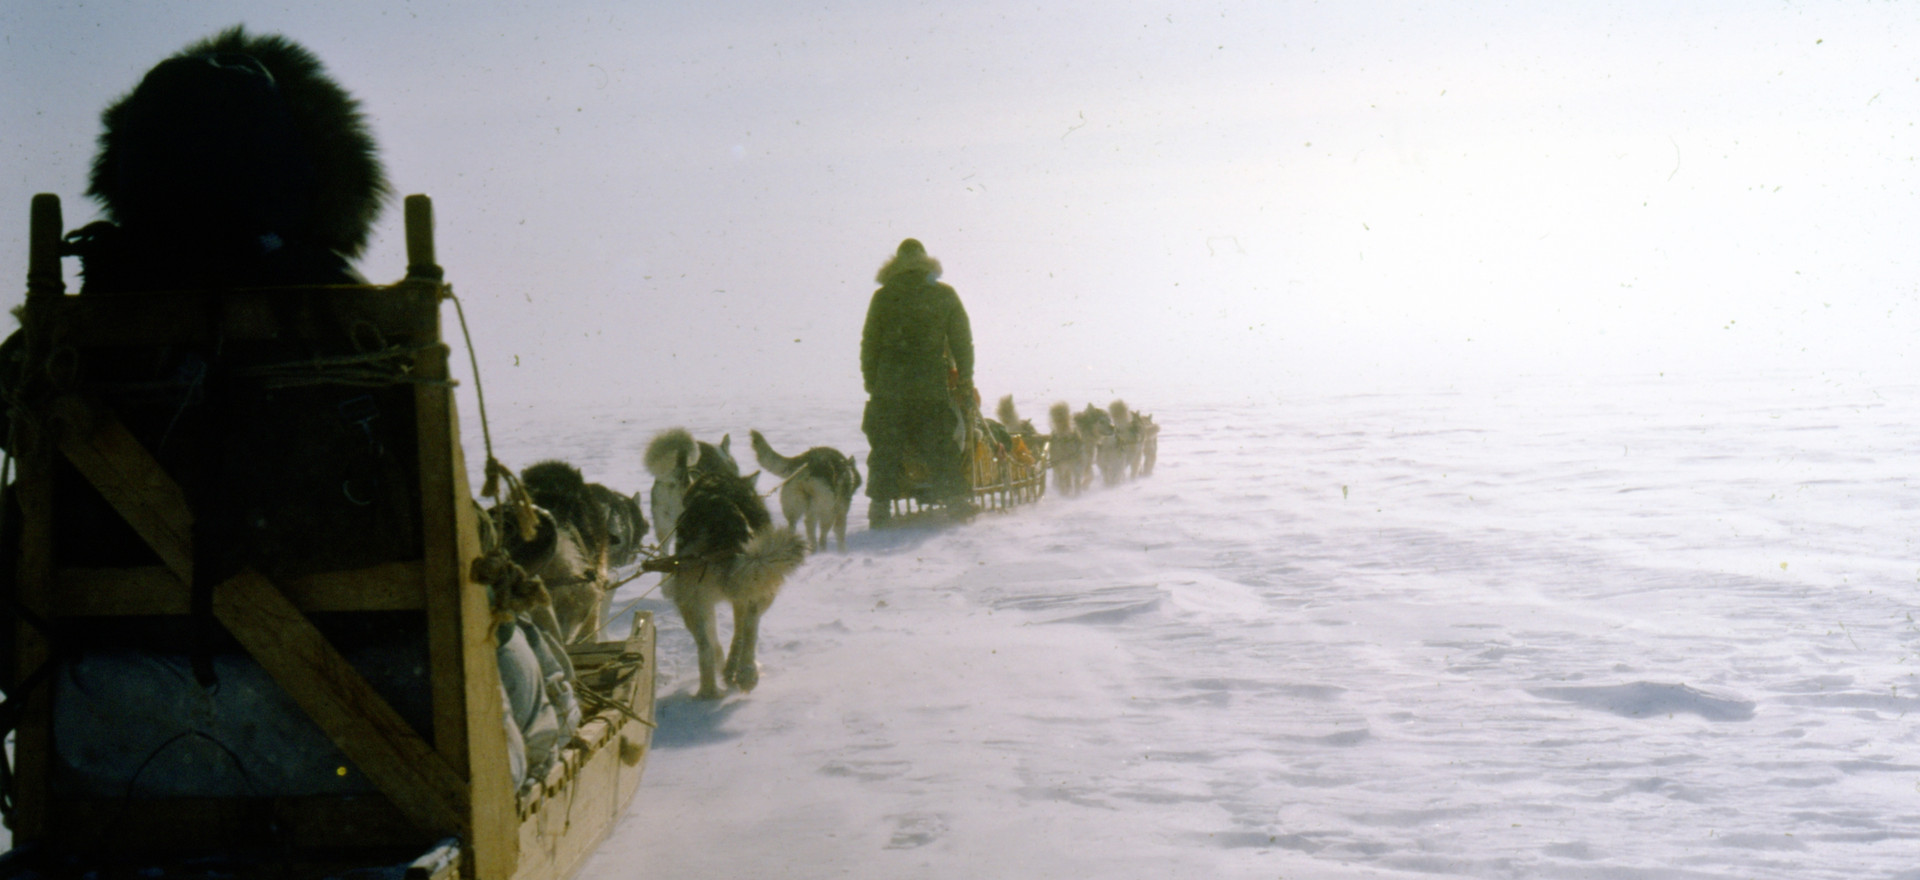 Richard left Wainwright in the fall of 1966. Ten years and four dog teams later, he's mushing with friends through Dalki Pass to spend the winter in Huslia, a village on the banks of the Koyukuk River.